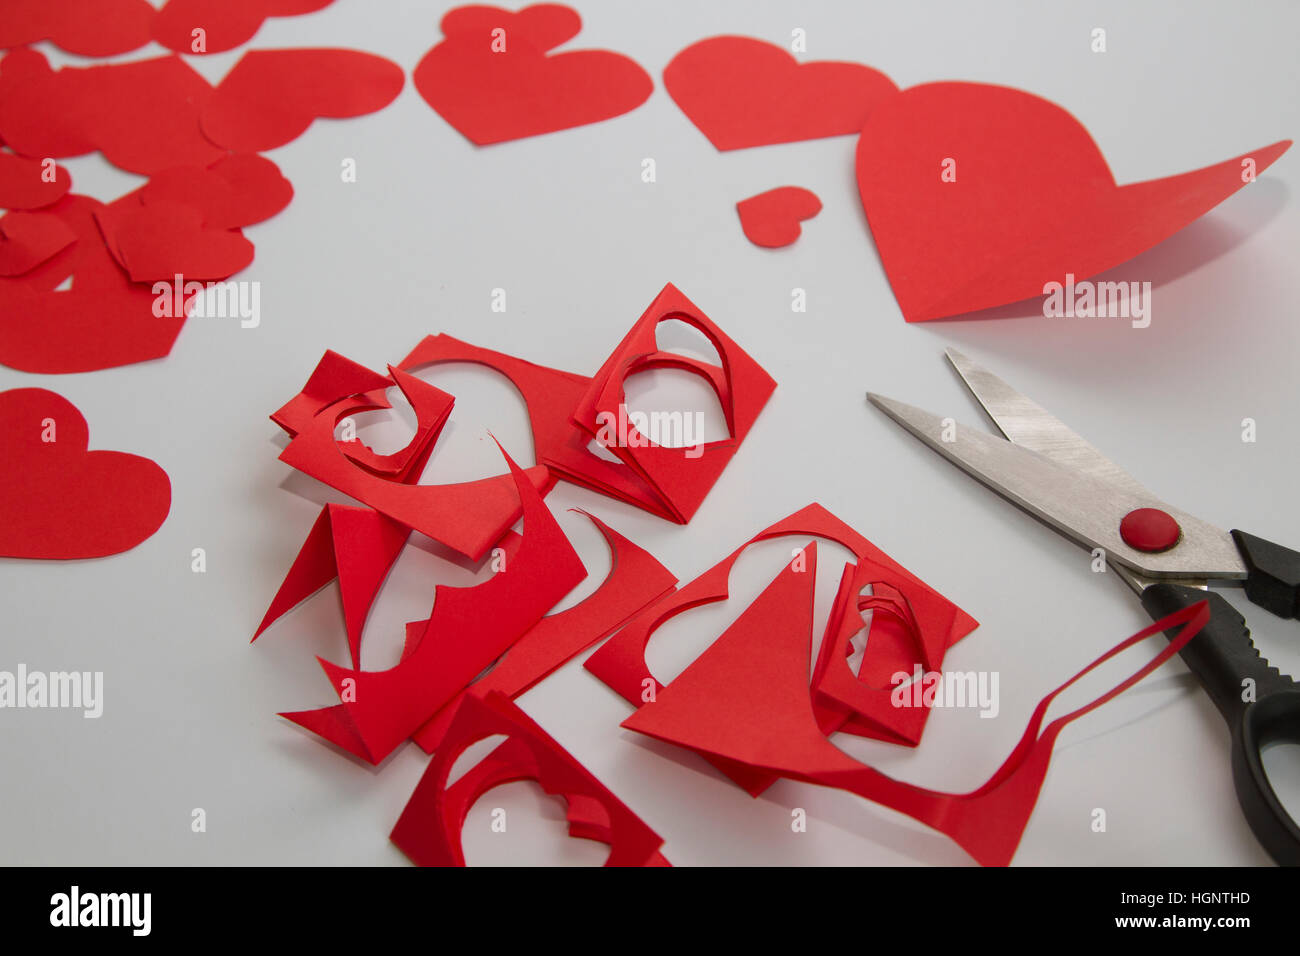 Preparation of greeting cards for valentines day from red paper preparation of greeting cards for valentines day from red paper hearts and scissors kristyandbryce Gallery